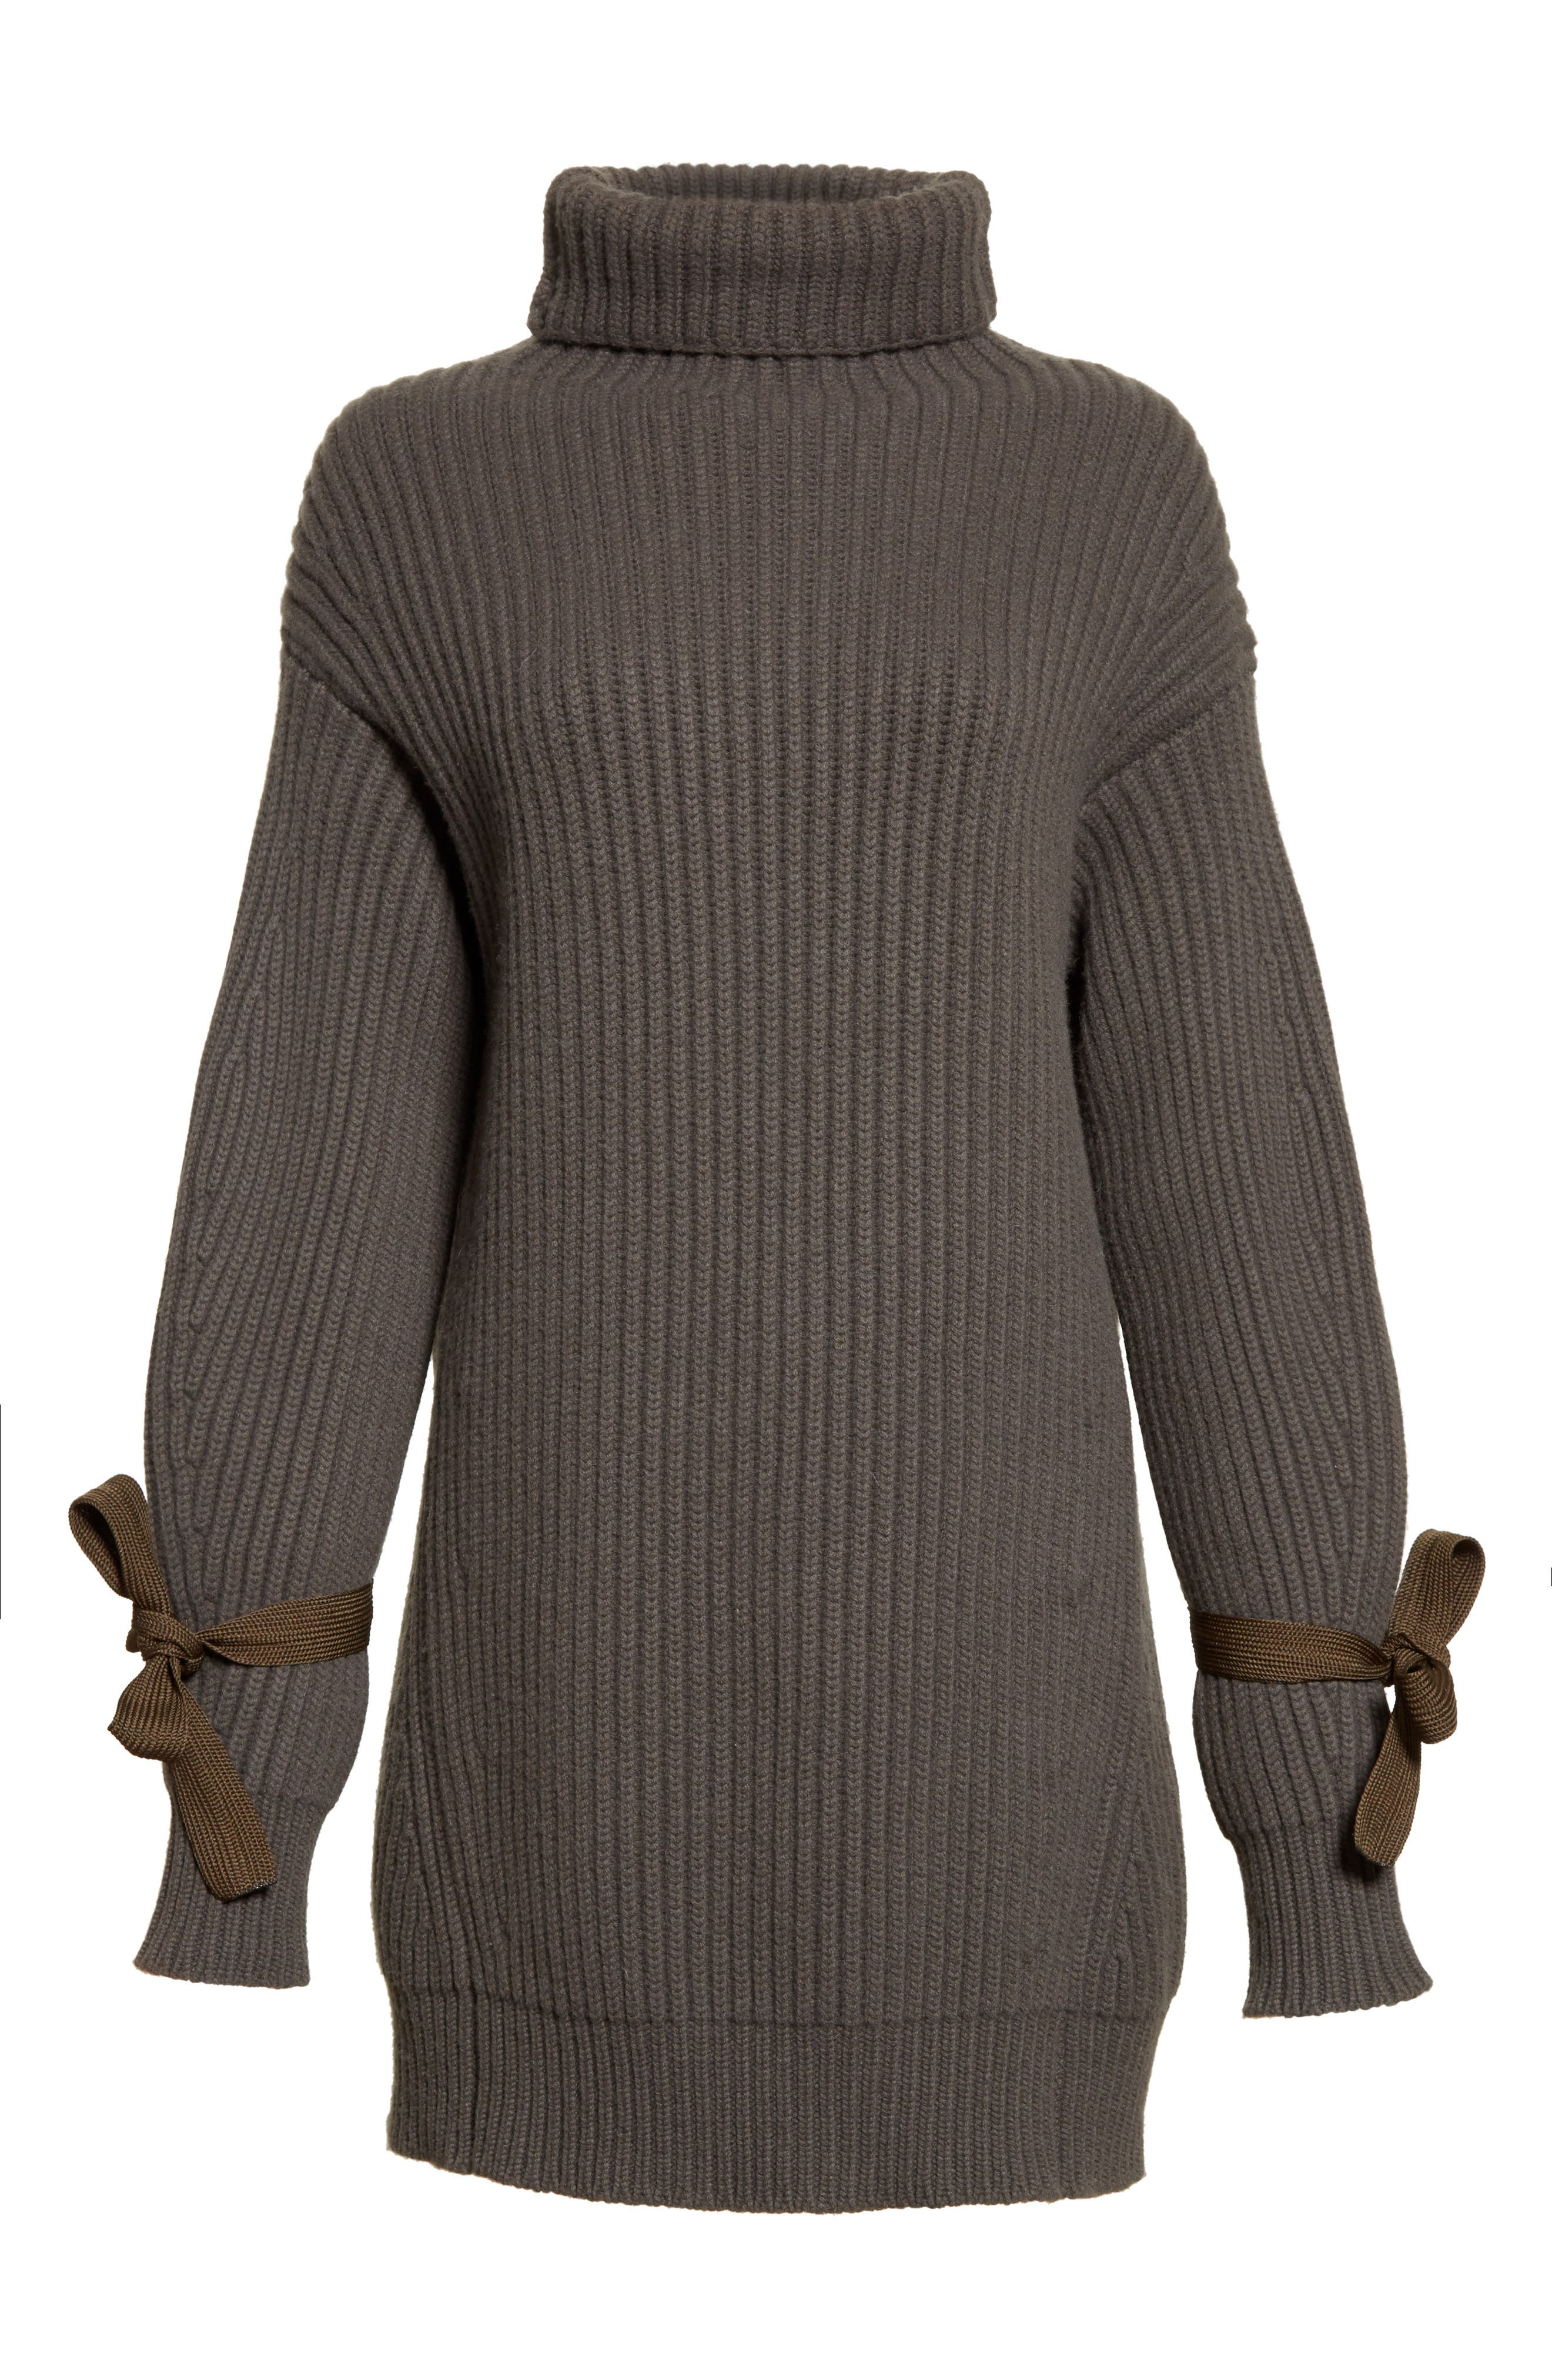 Alternate Image 4  - Moncler Ciclista Wool & Cashmere Sweater